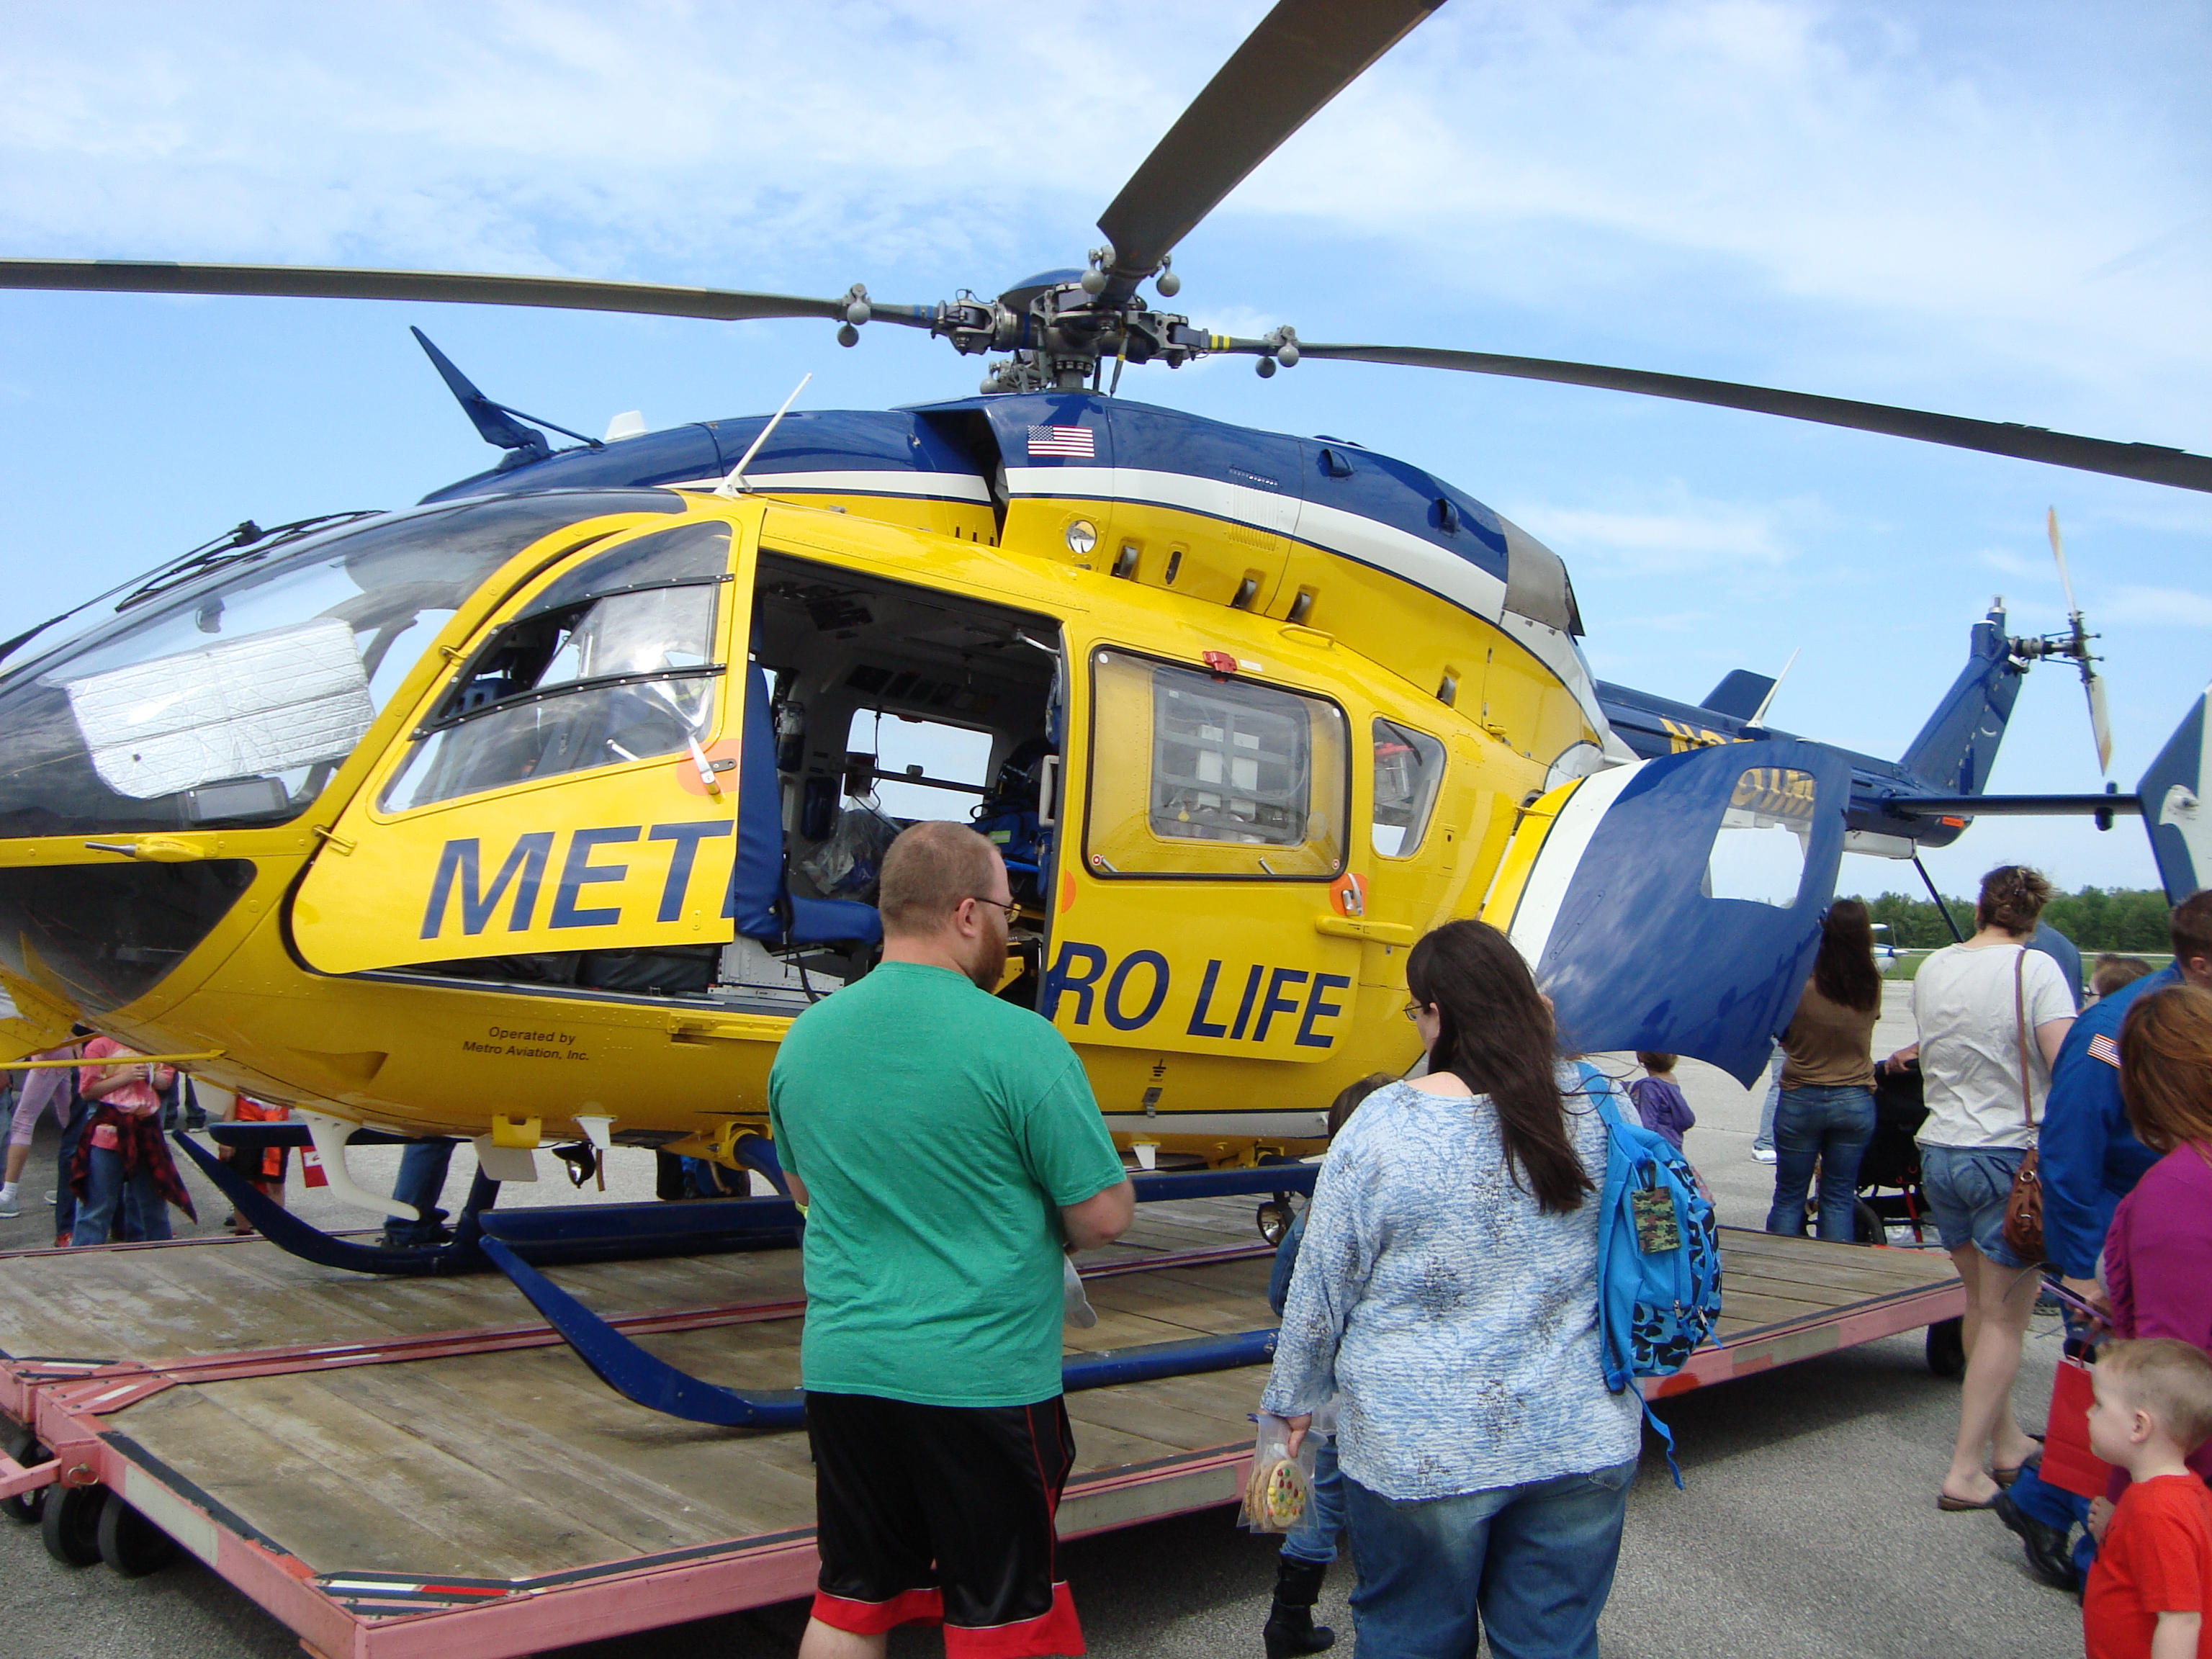 Discover Aviation Day - LifeFlight helicopter 5-19-18